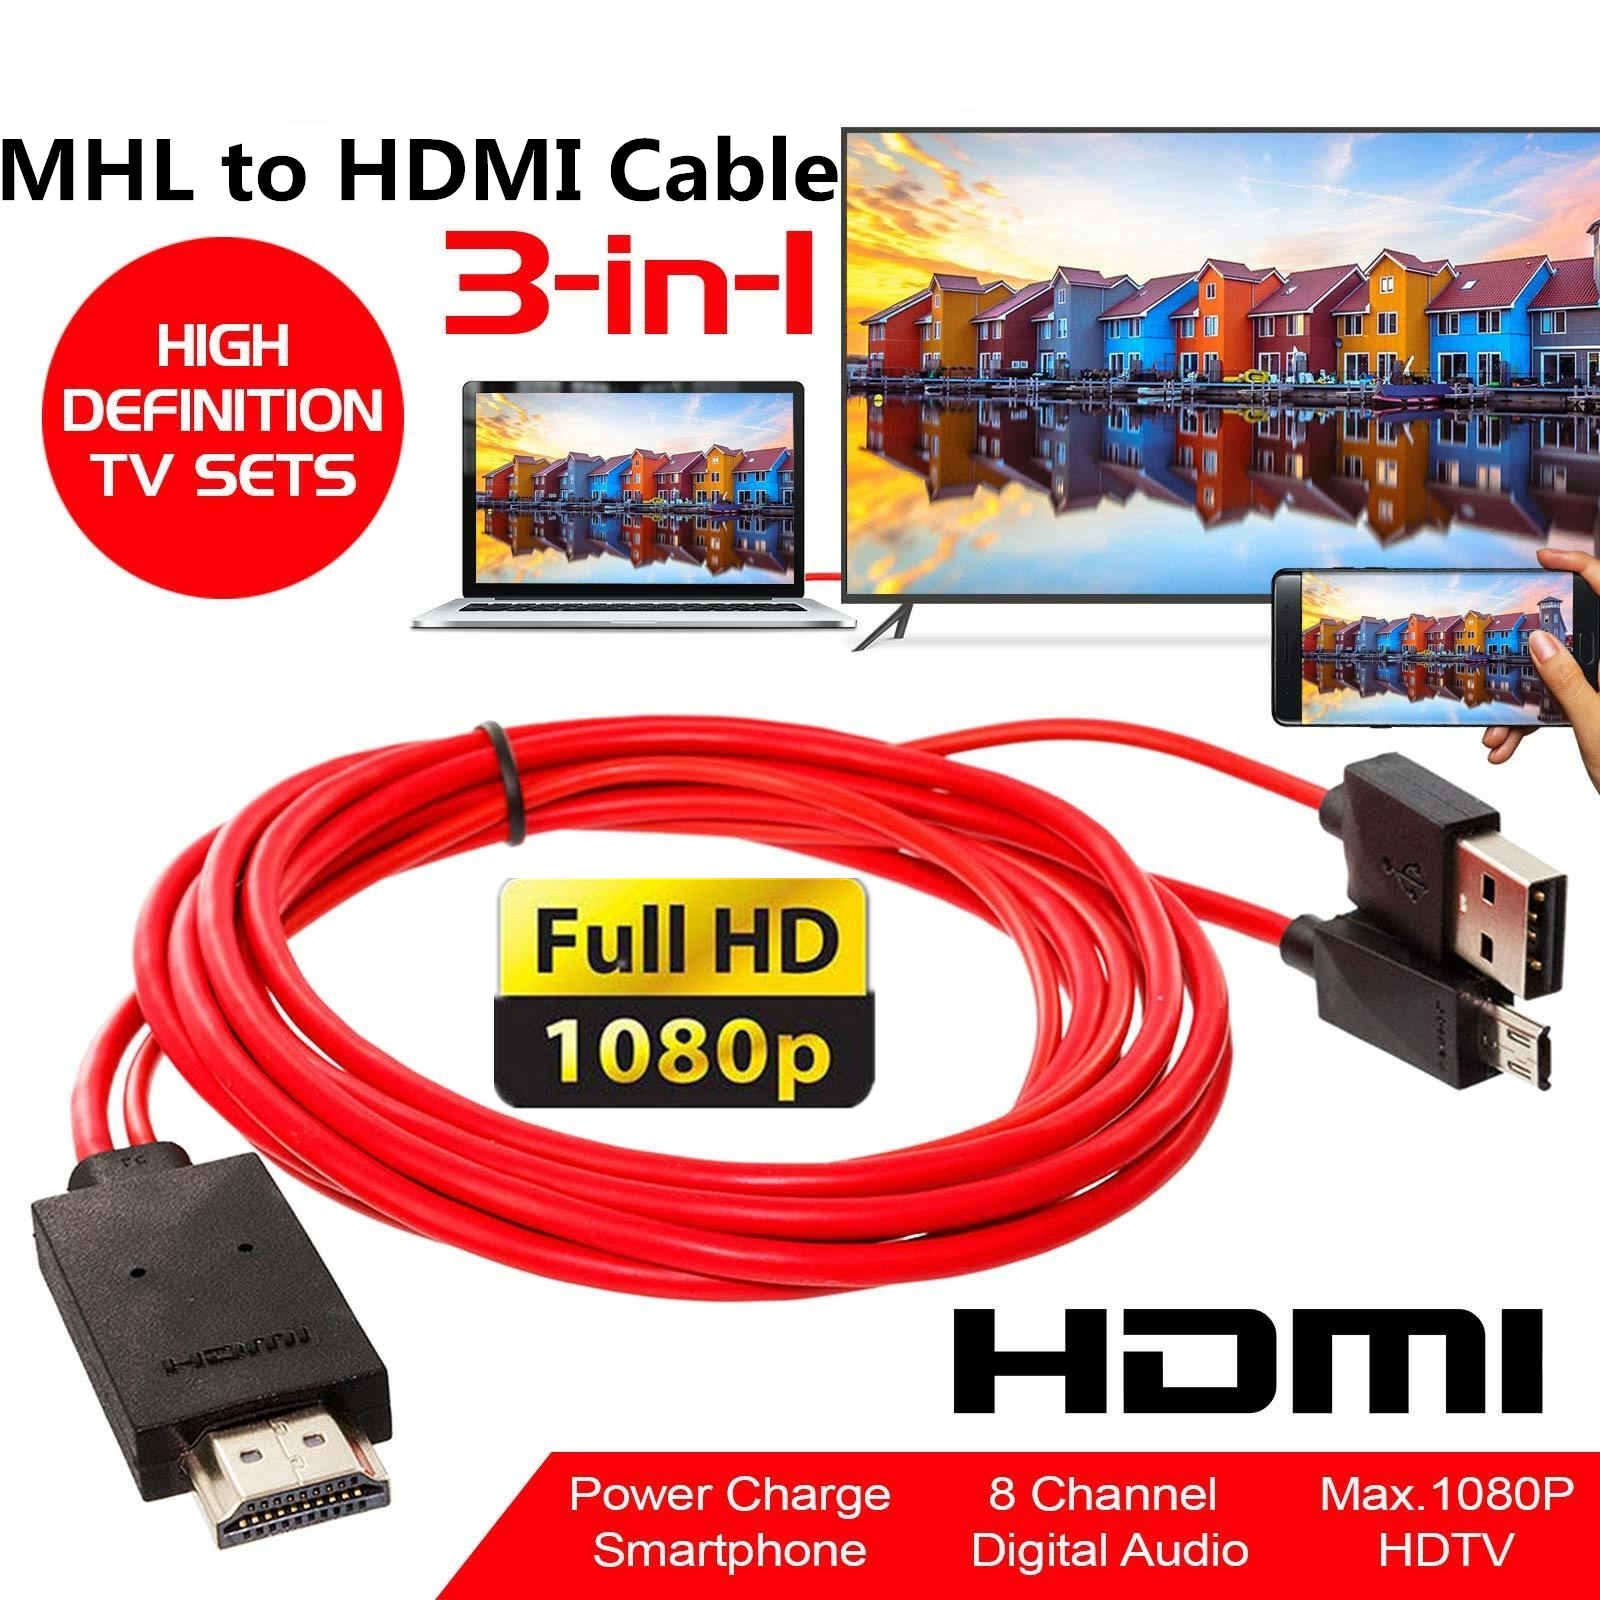 USB MHL a HDMI 1080P HD Cable TV Out plomo para Android ... Wiring Cable Tv on cable tv connectors, cable tv switch, cable tv splitter, component video, cable tv service, f connector, cable tv grounding, communications satellite, cable tv installation, cable tv outlets, ethernet crossover cable, category 5 cable, optical fiber cable, cable tv equipment, cable tv transmitter, radio frequency, cable tv hardware, cable tv jumper wire, shielded cable, rf connector, networking cables, category 6 cable, cable tv mounts, cable tv construction, cable tv conduit, cable tv plugs, cable tv software, cable tv antenna, cable tv computer, ribbon cable, bnc connector, cable tv repair, cable tv framing,